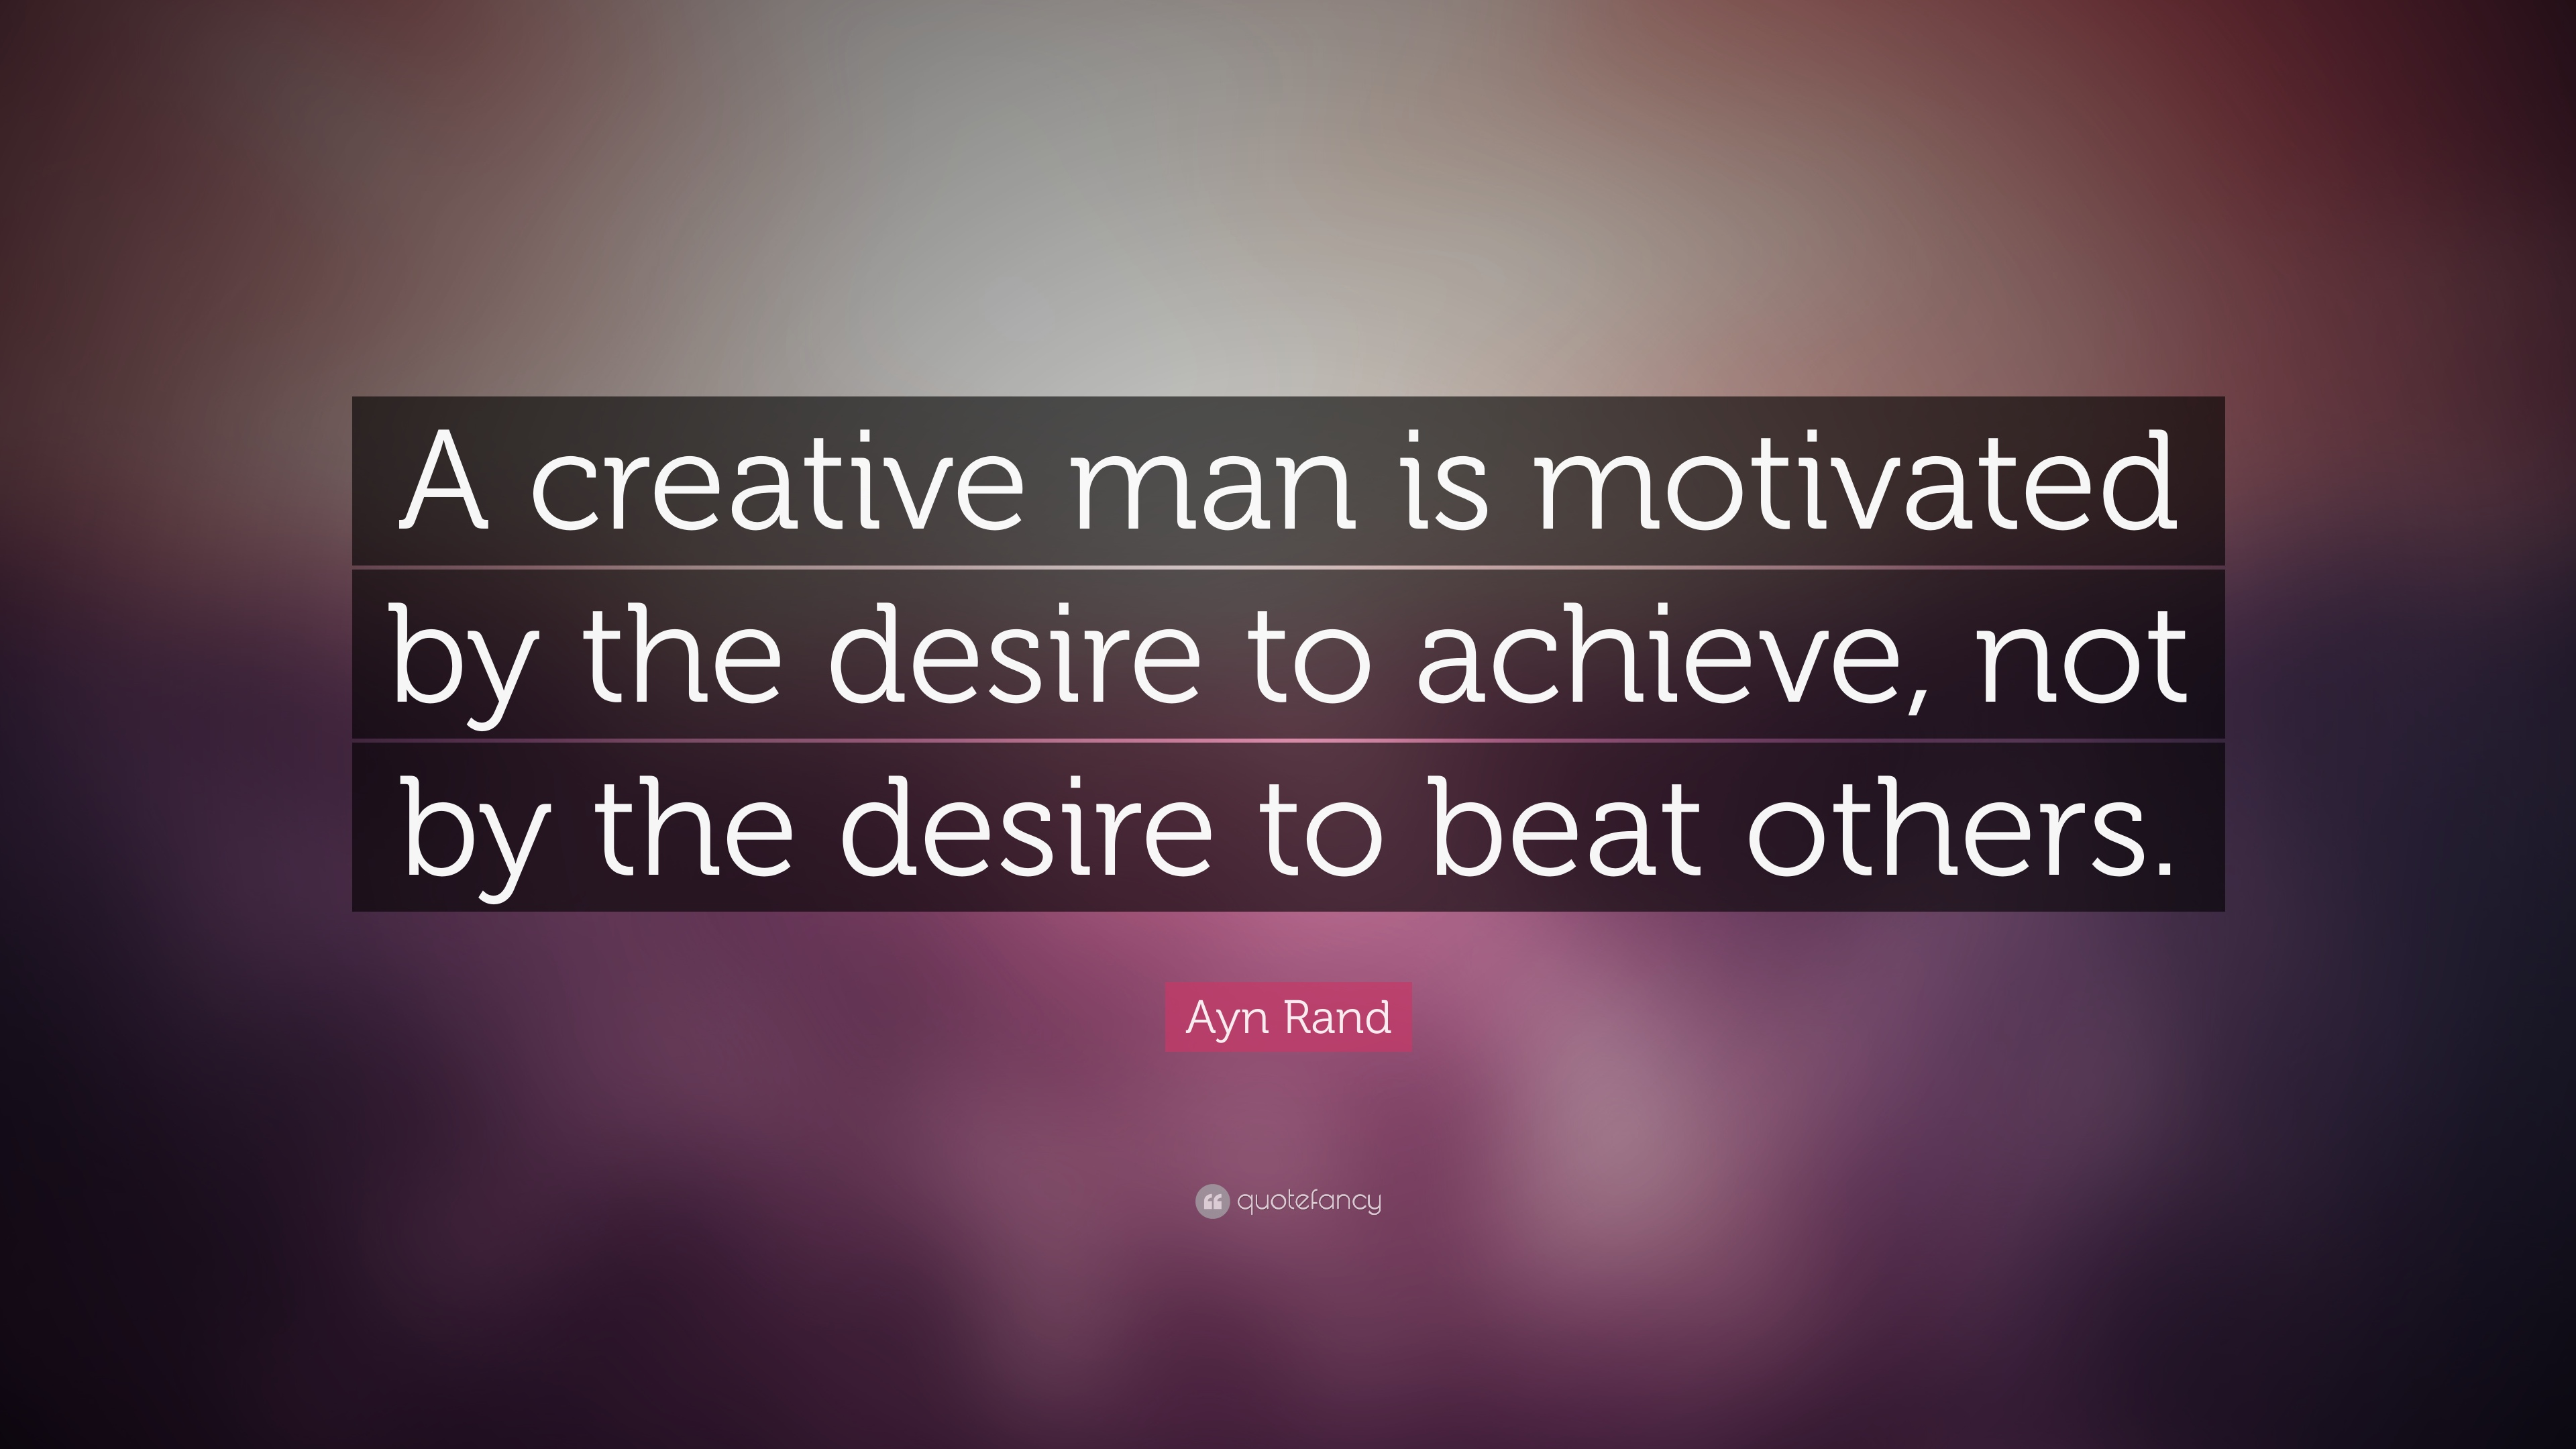 Achieve Quotes Wallpaper Ayn Rand Quote A Creative Man Is Motivated By The Desire